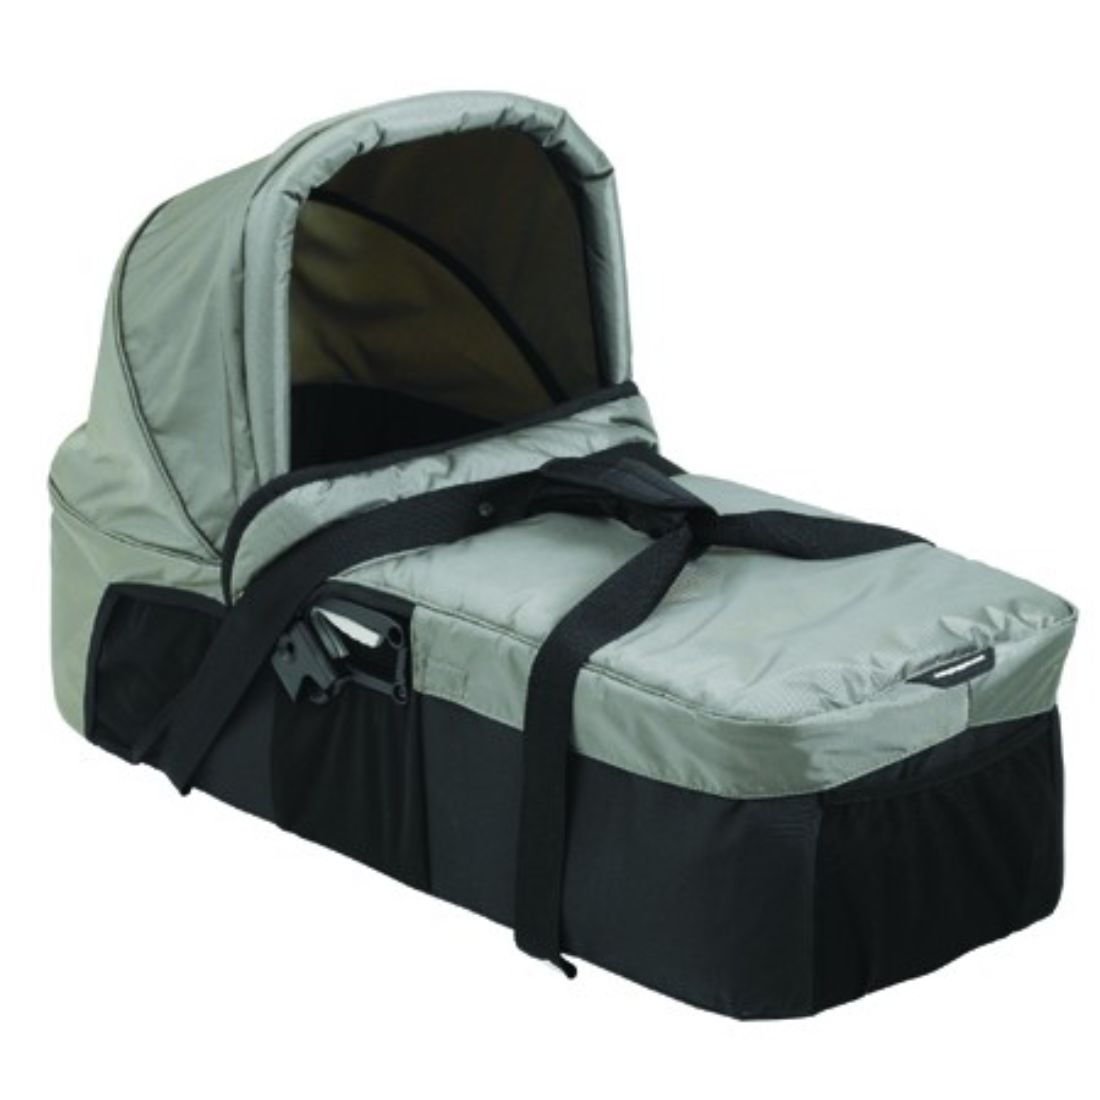 Made To Measure Mattress For Baby Jogger Compact Carrycot